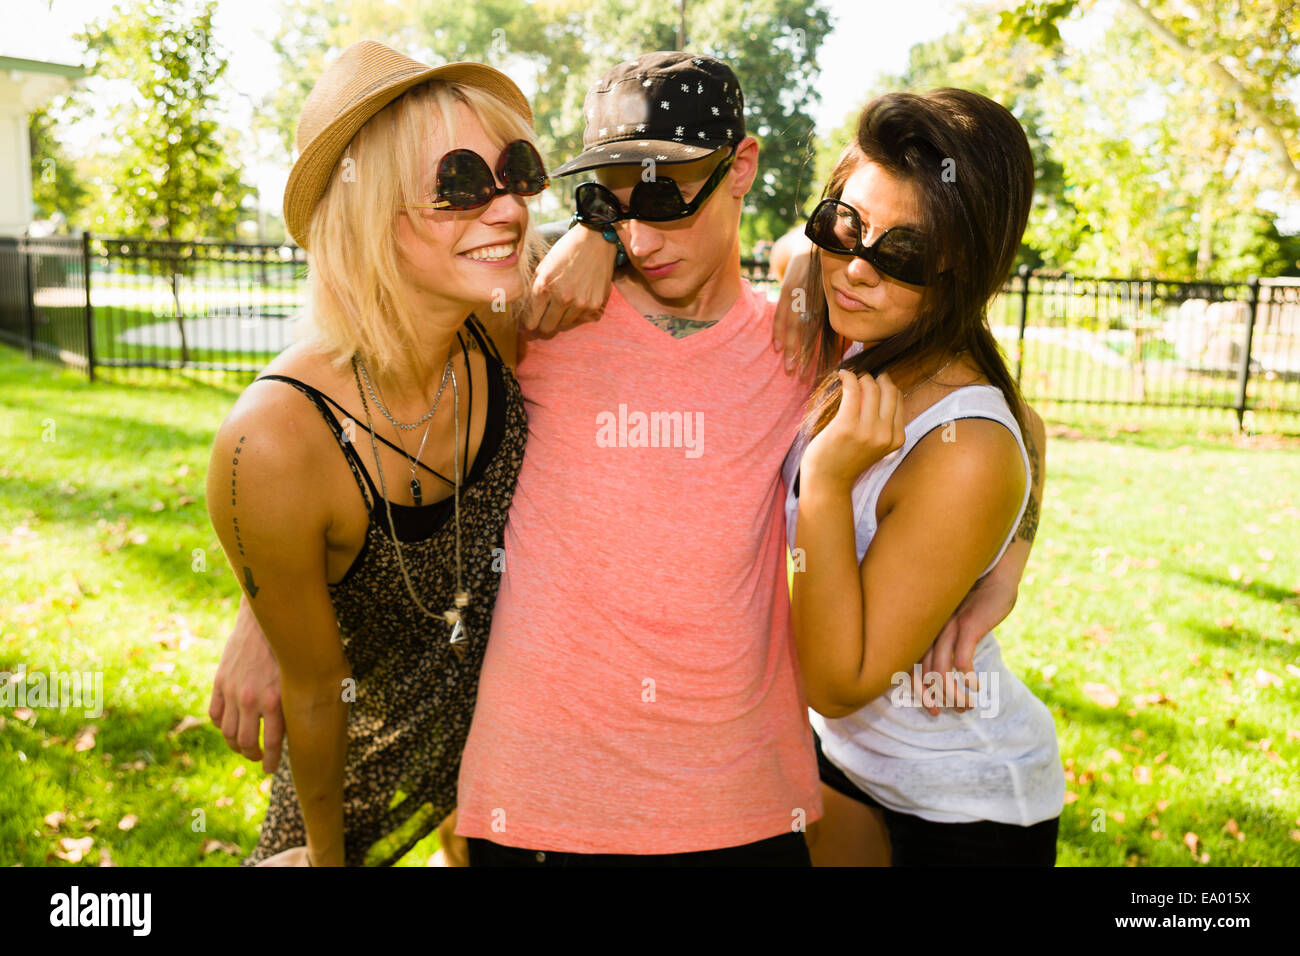 Portrait of young man and two female friends in upside down sunglasses - Stock Image